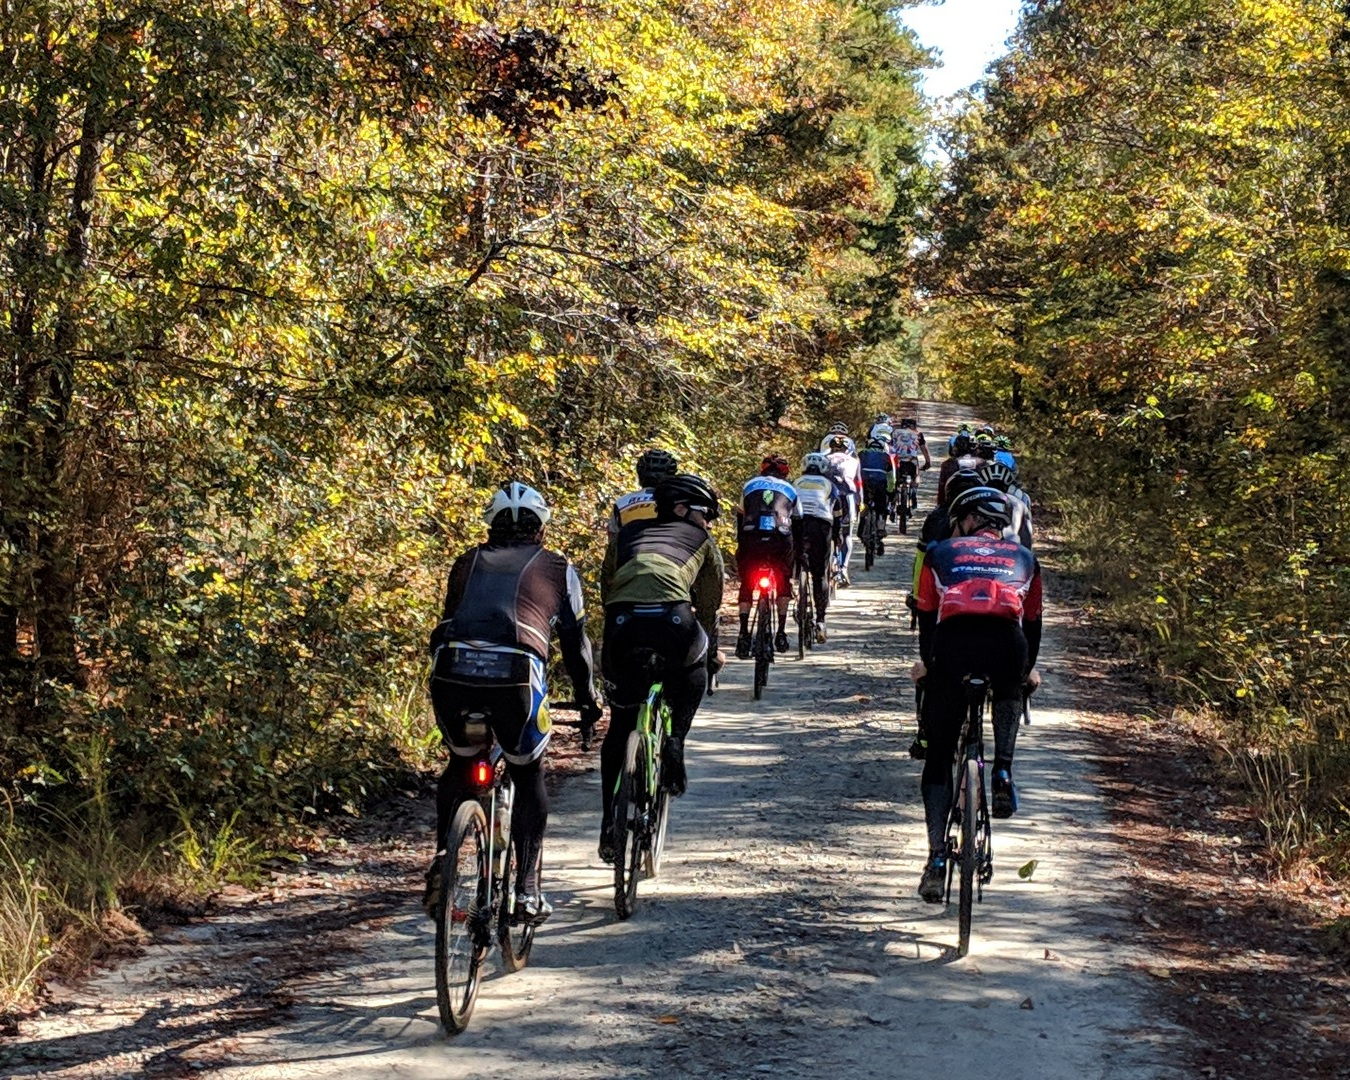 2 day-Diva/Dude: GravelCamp - October 3rd-5th 2019 (In conjunction with Boyd Cycling Gravel event)Location: Sumter National Forest9:30am-3pm dailyDifficulty Level: Blue | DiamondCost TBDGravel is the rage right? WELP Boyd Cycling and TotalCyclist were there before the rage! Join us in the Sumter National Forest for coaching, training, friendship and Fun….Gravel Fun!